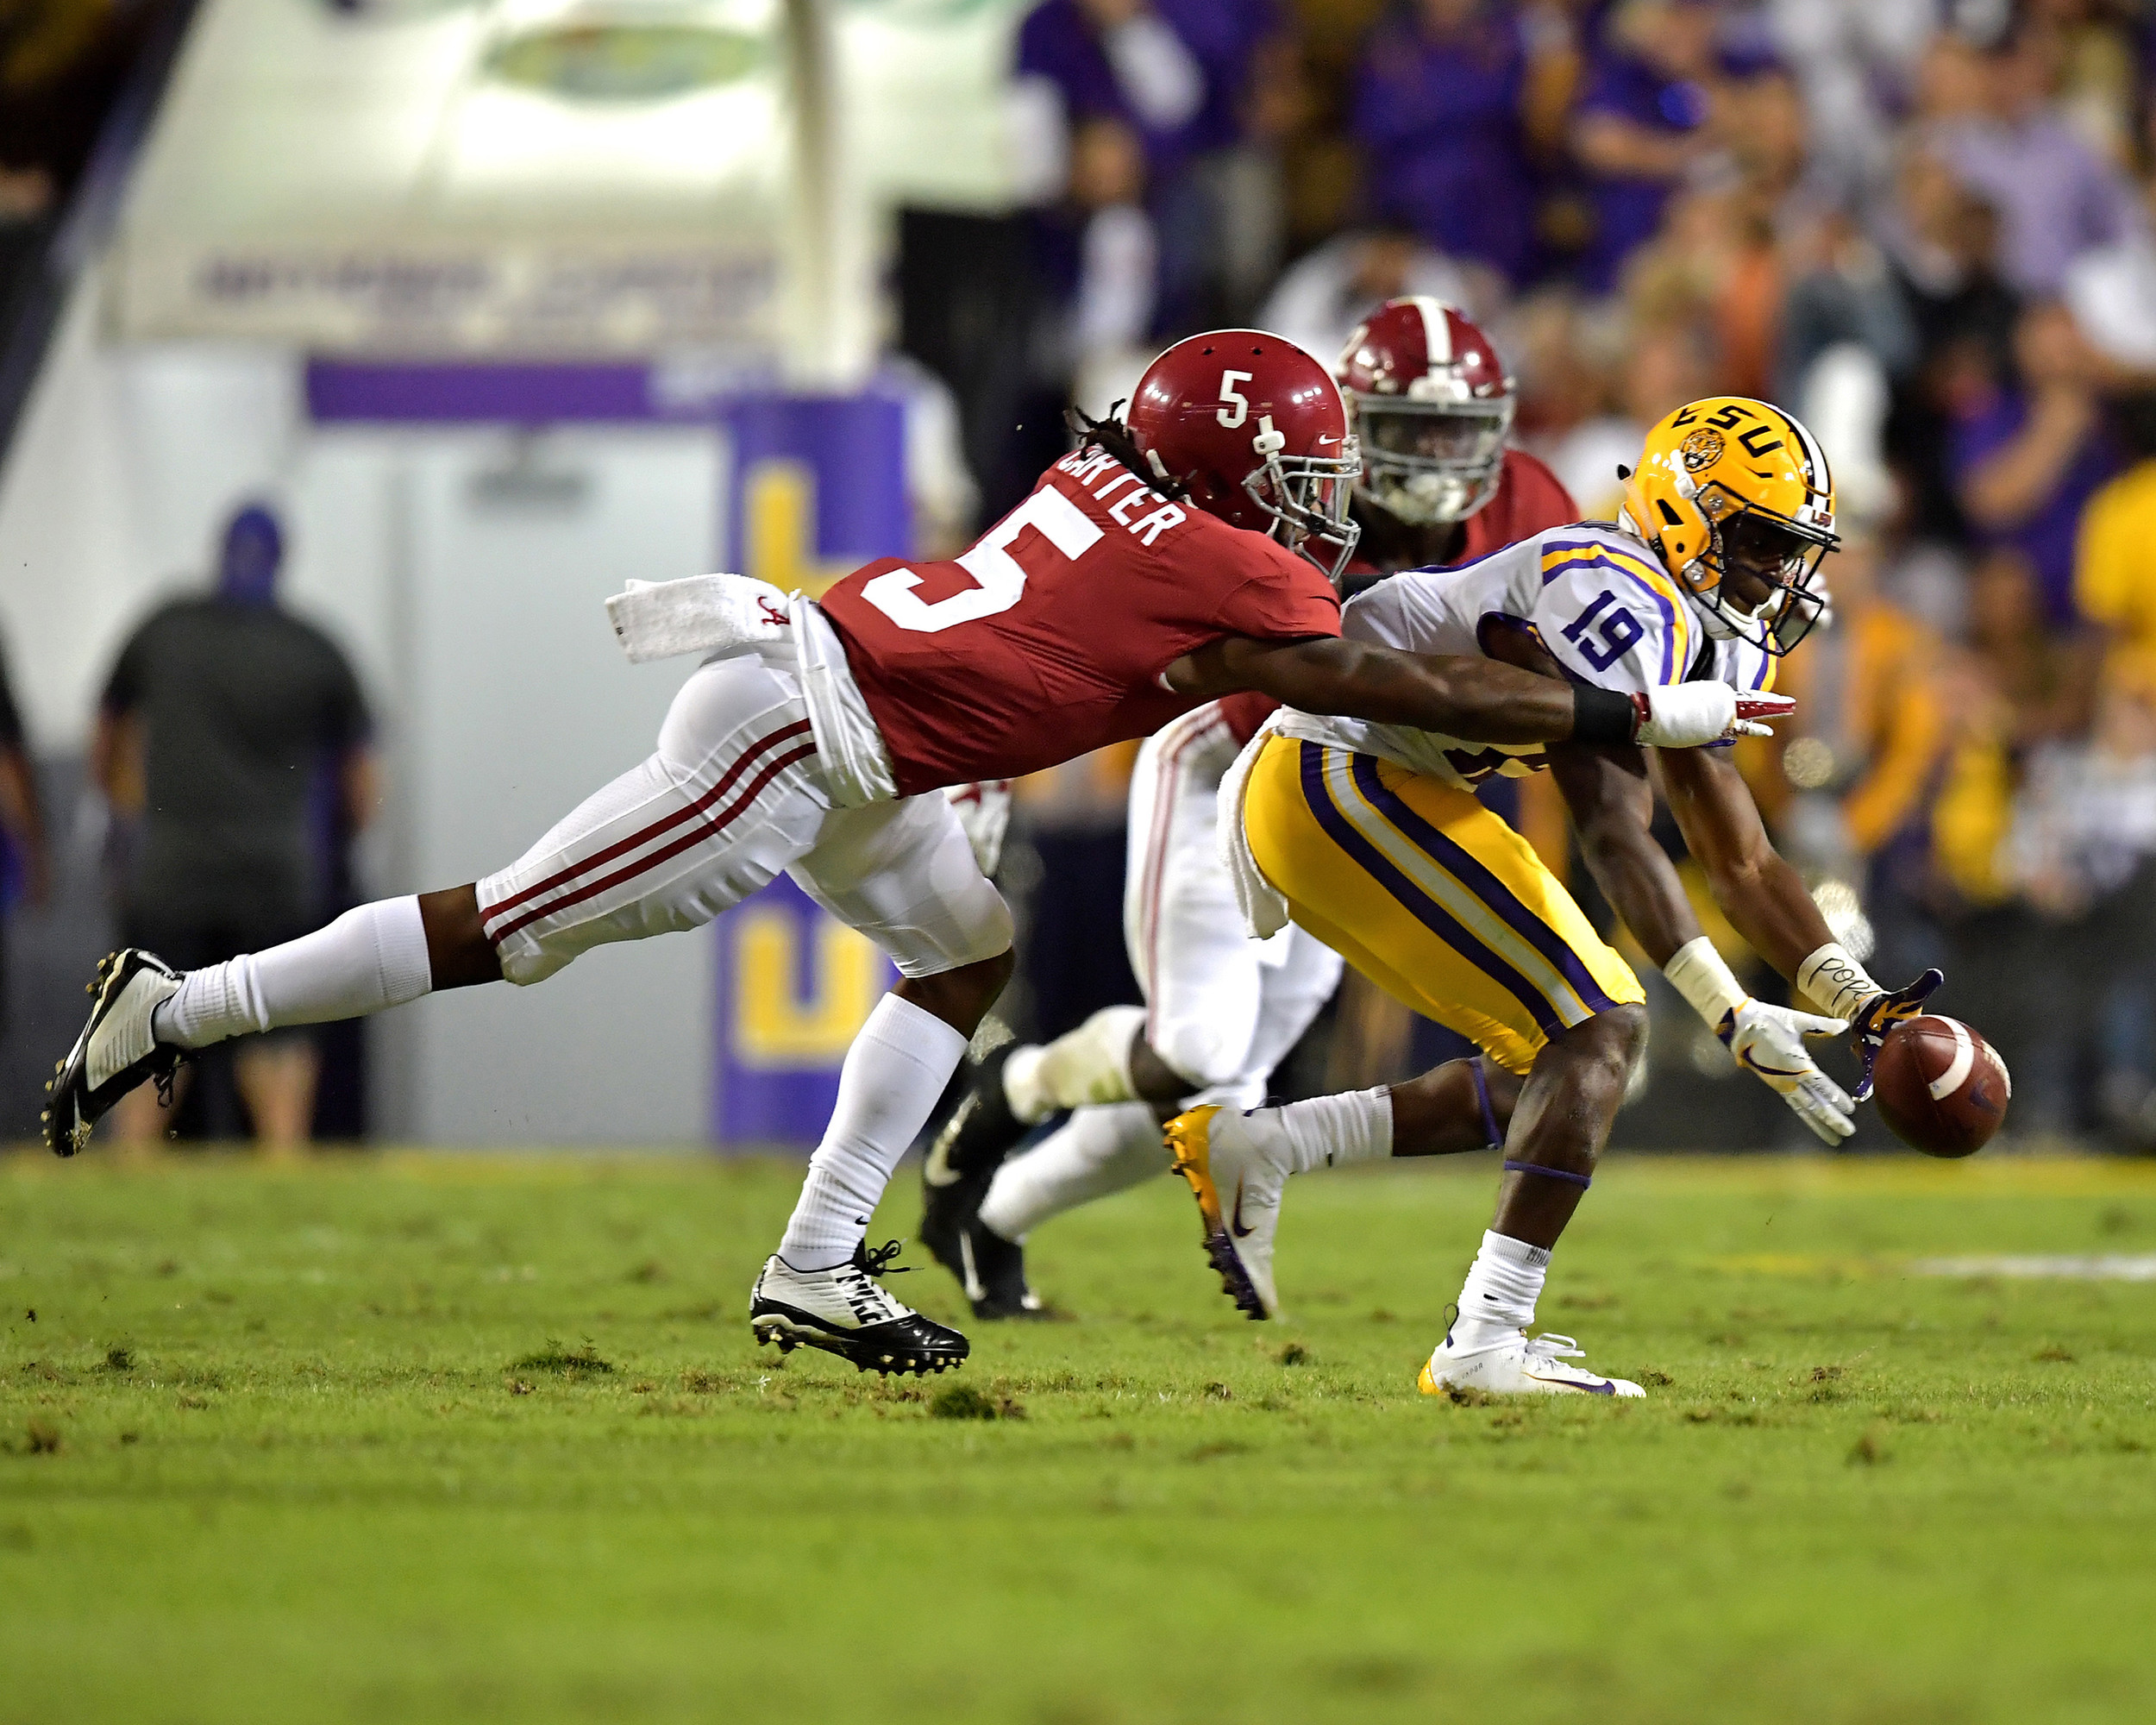 Alabama Crimson Tide defensive back Shyheim Carter (5) breaks up a pass intended for LSU Tigers wide receiver Derrick Dillon (19) during the first half of an NCAA football game Saturday, November 3, 2018, at Tiger Stadium in Baton Rouge, La. (Alabama wins 29-0. (Photo by Lee Walls)